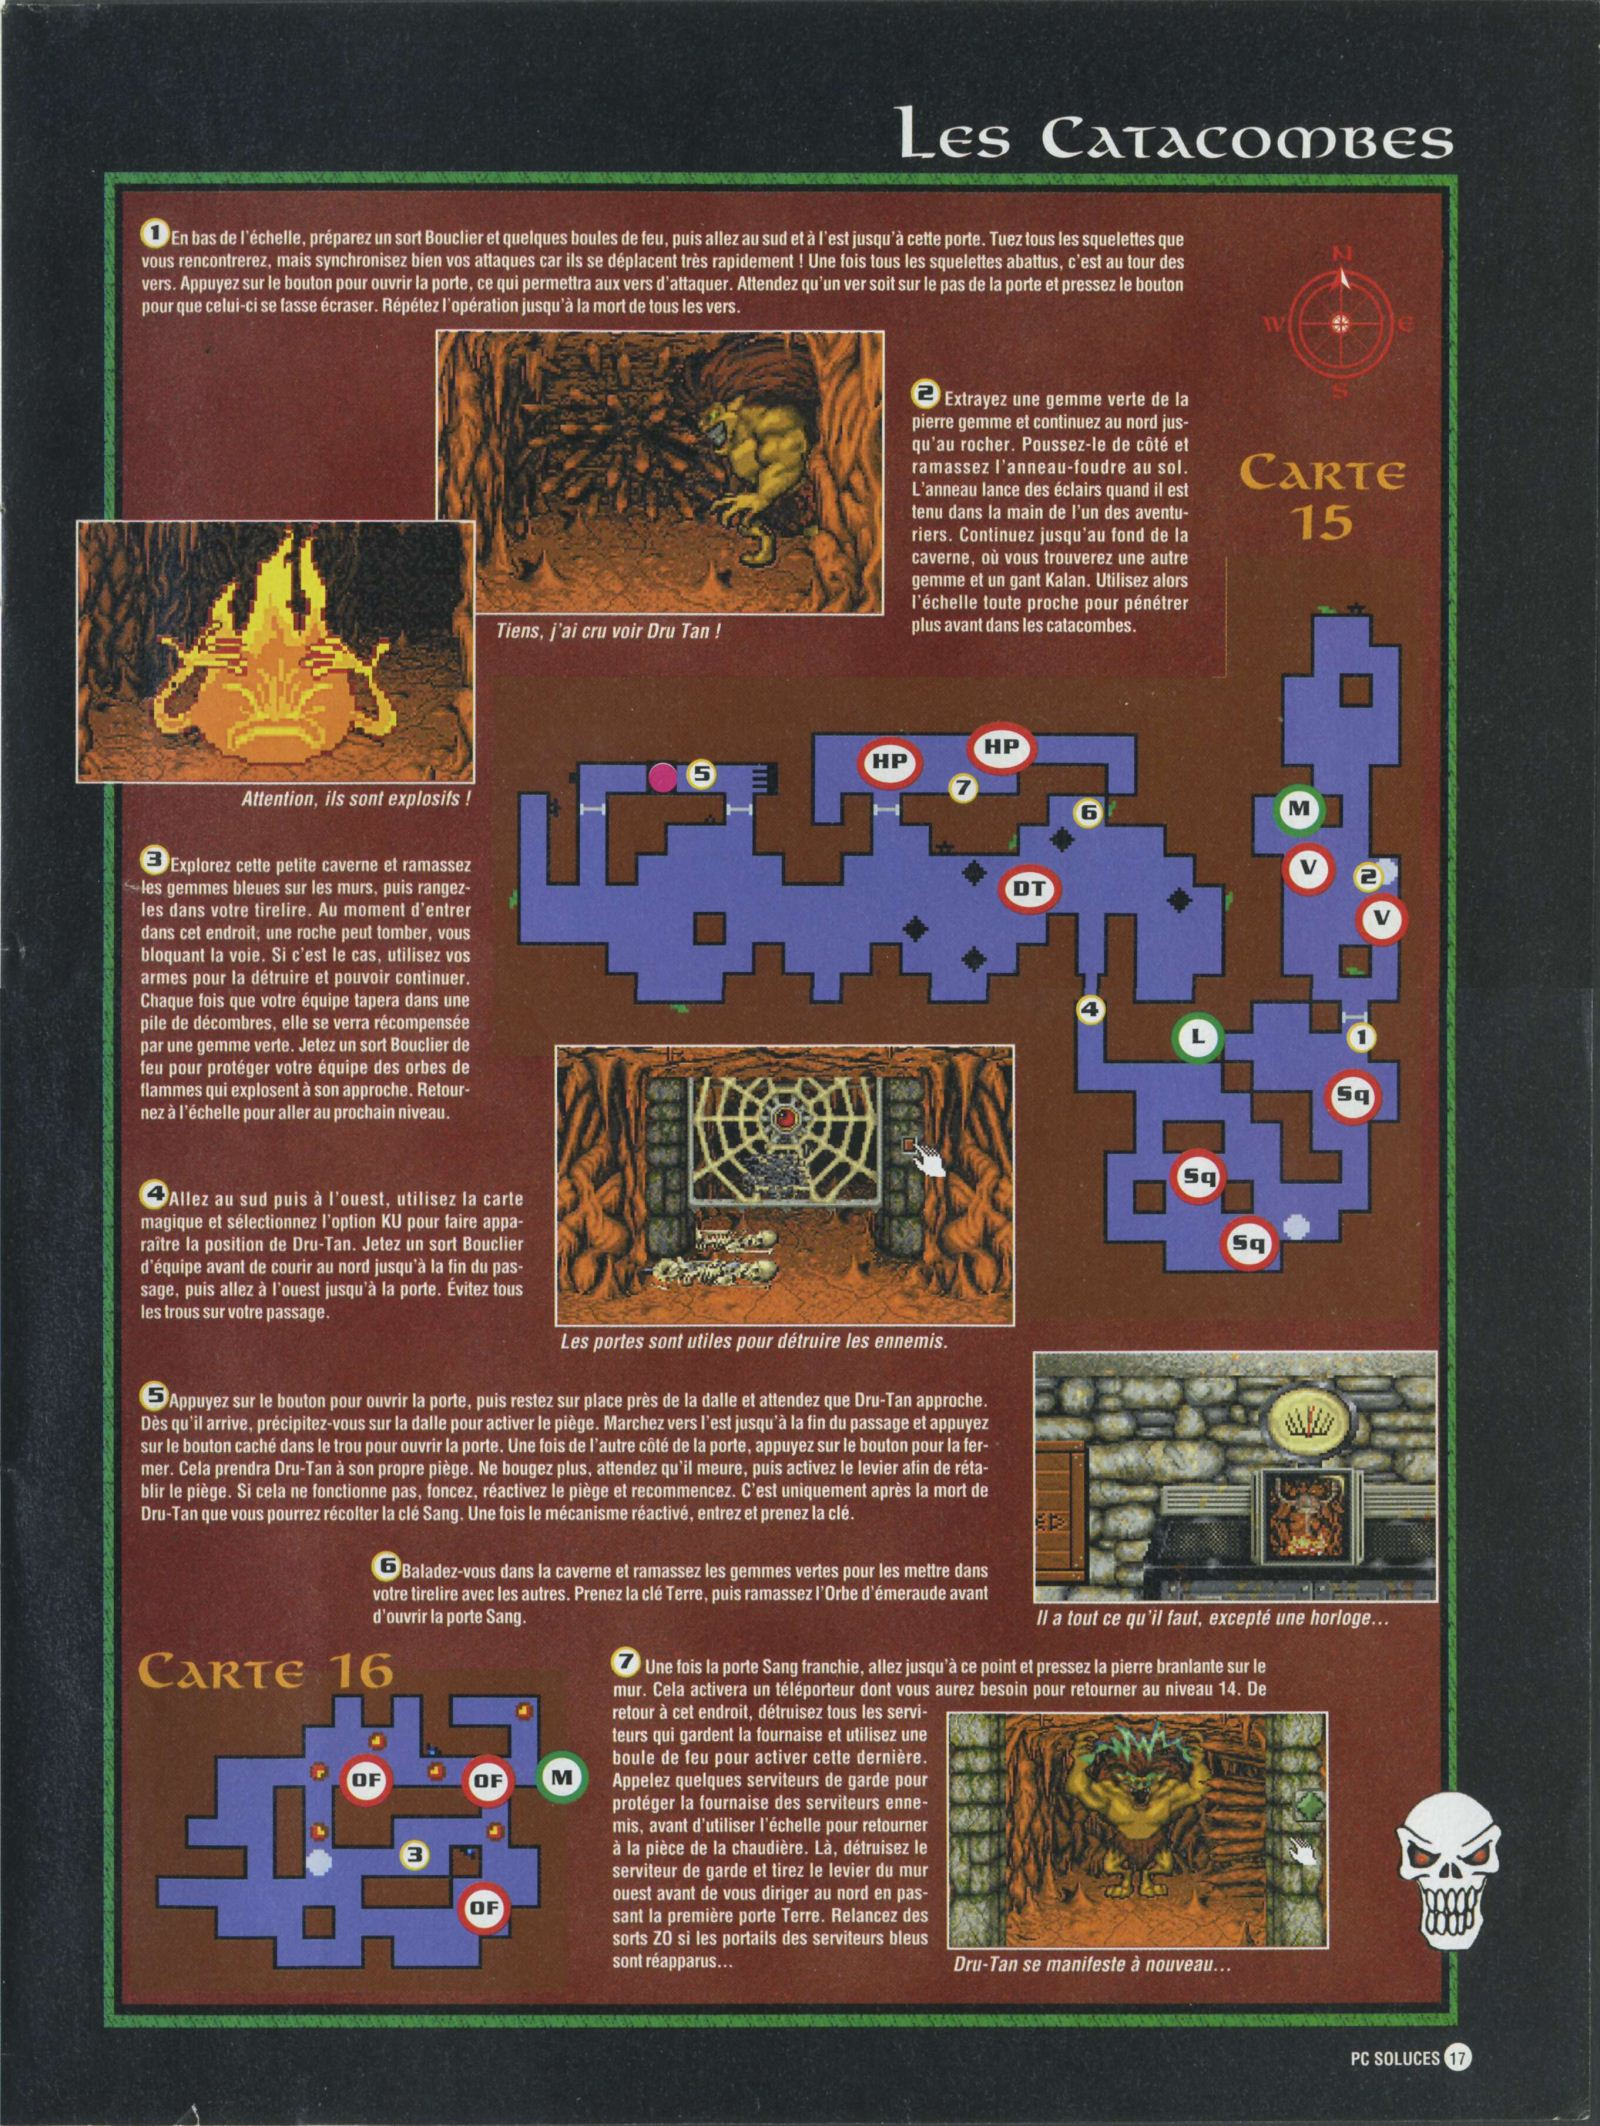 Dungeon Master II solution published in French magazine 'PC Soluces', Issue#1, February-March 1996, Page17